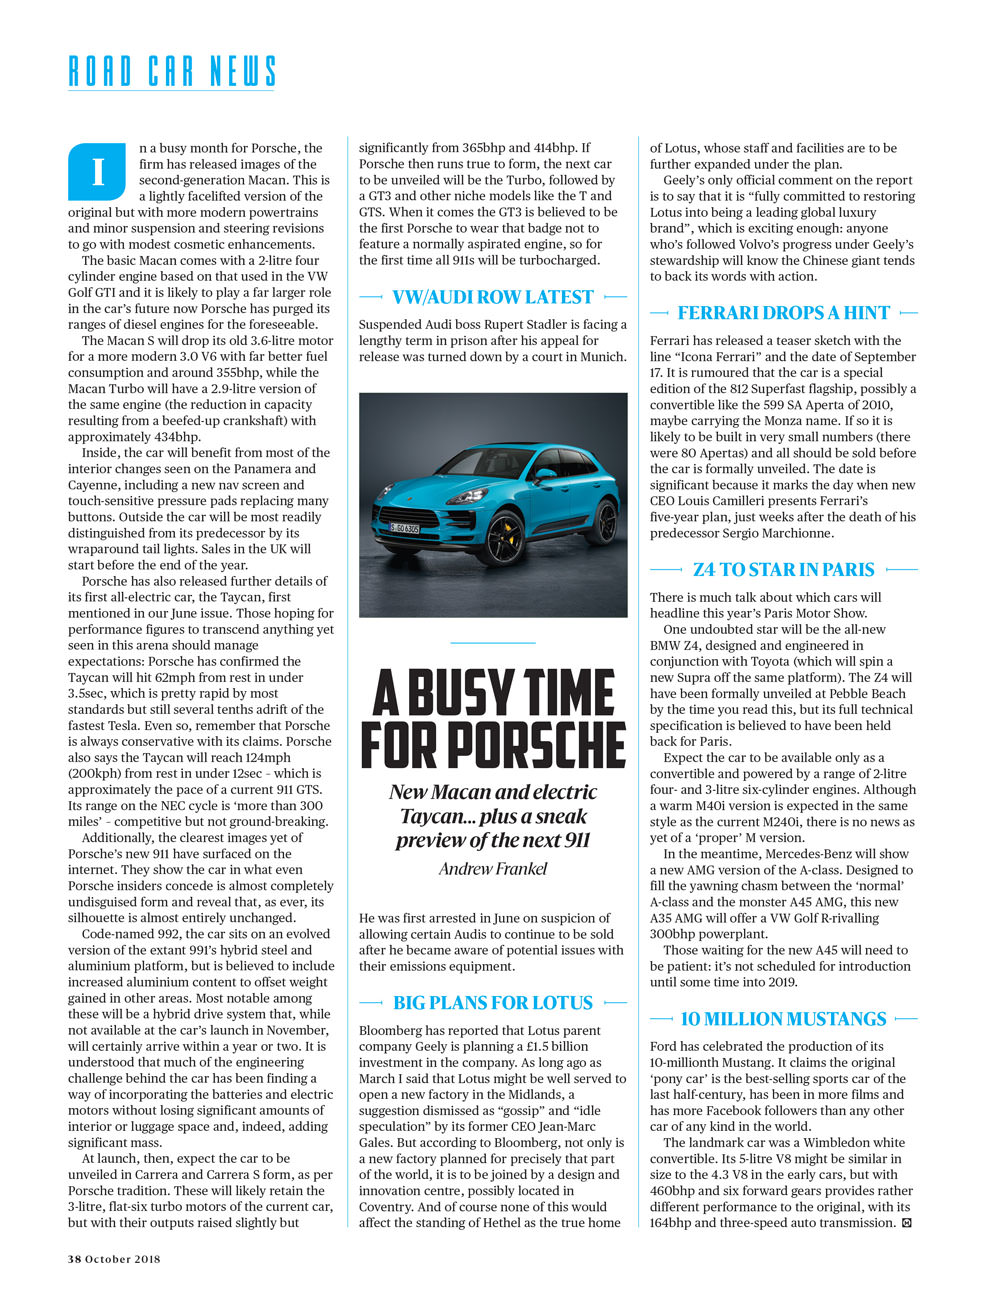 A busy time for Porsche | Motor Sport Magazine Archive